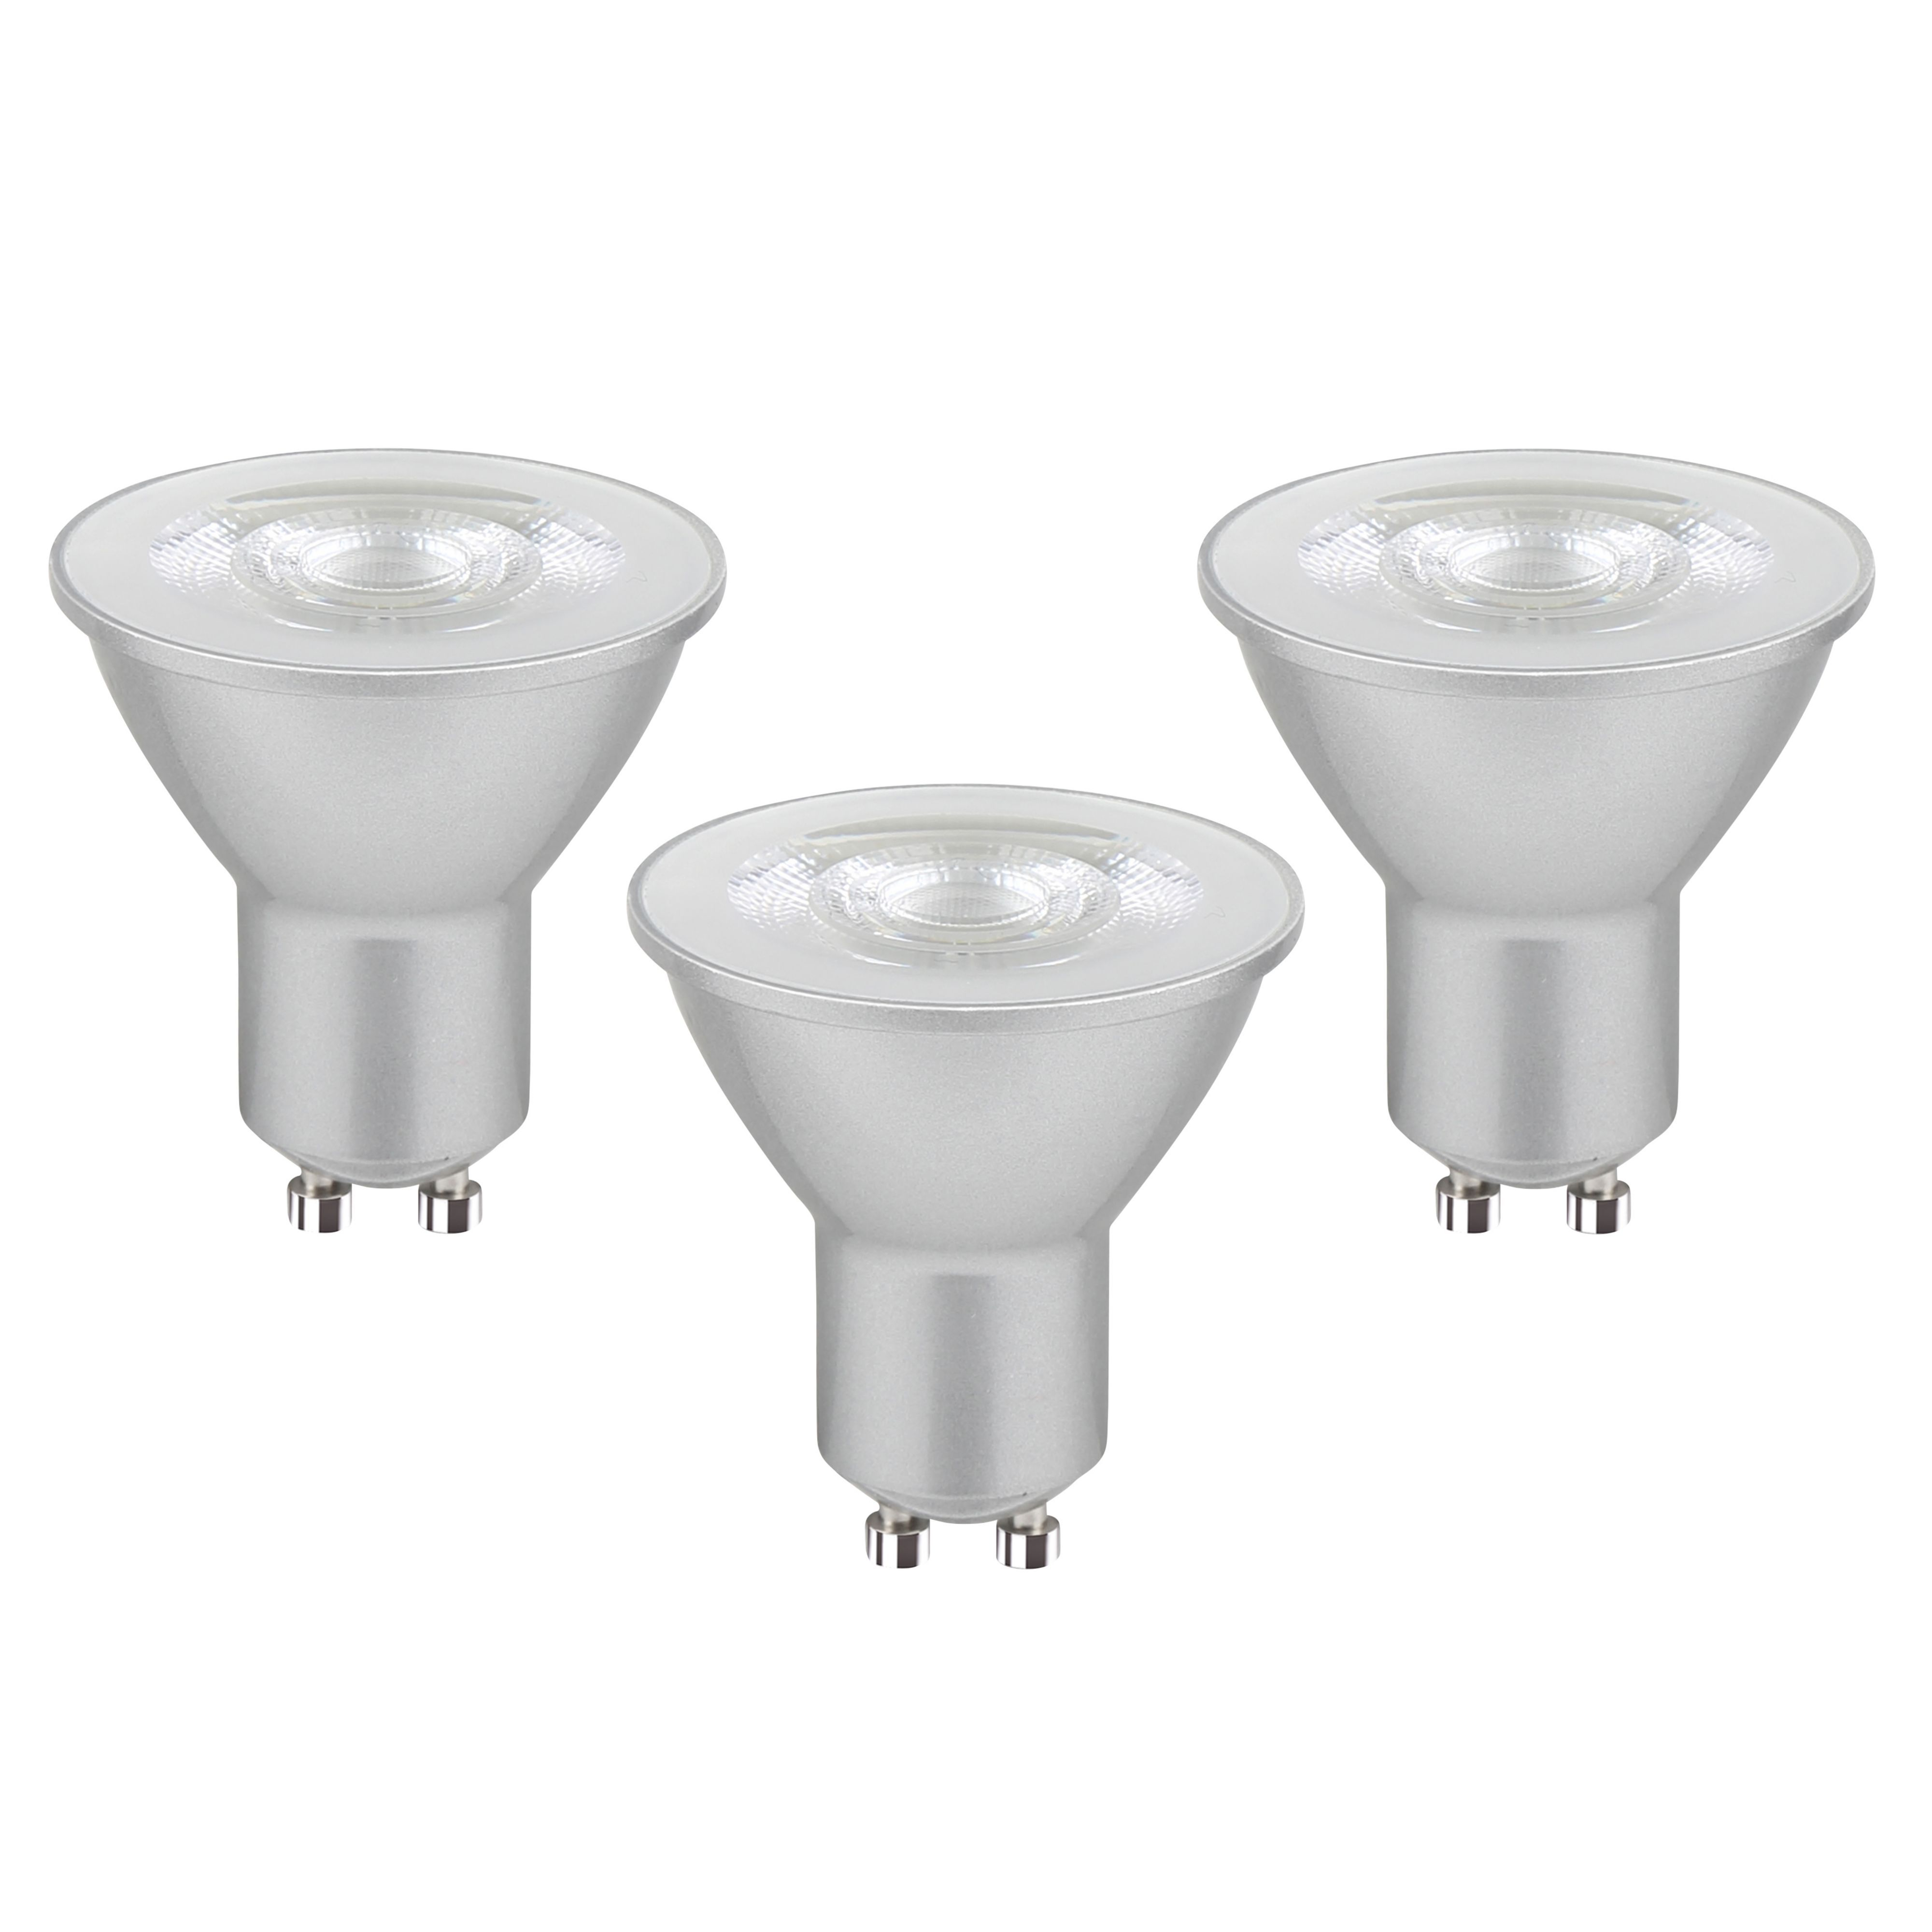 Diall Gu10 345lm Led Dimmable Reflector Light Bulb, Pack Of 3